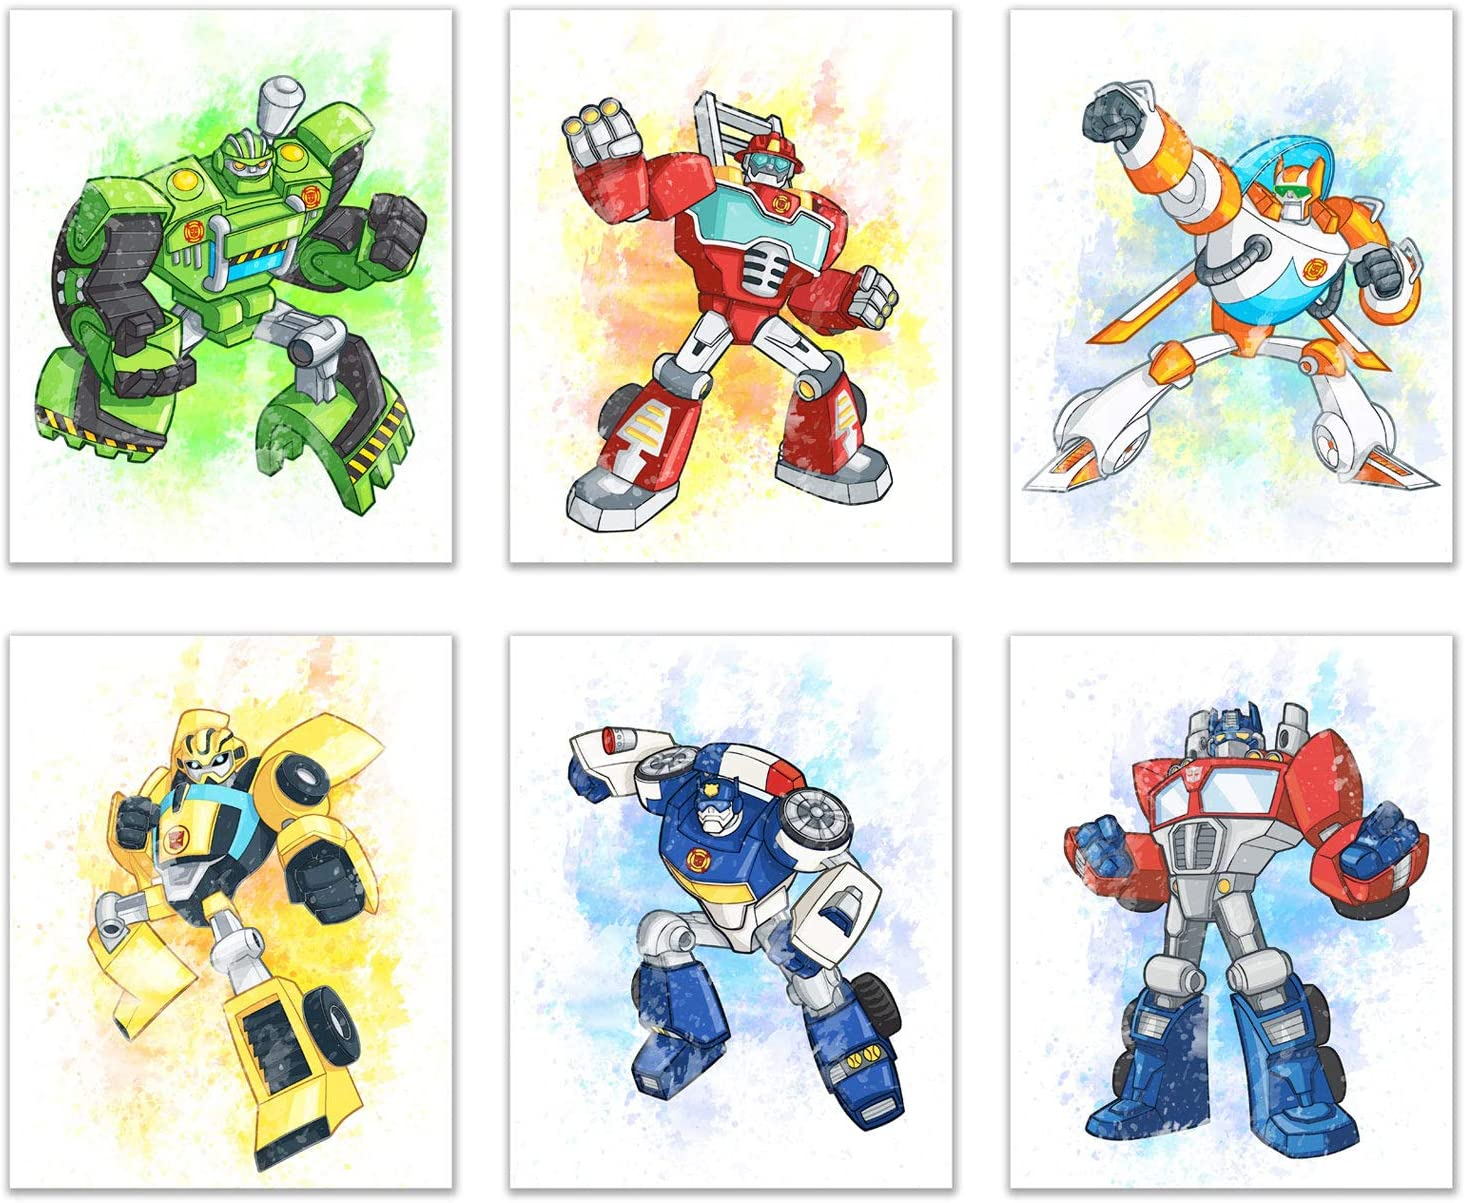 Transformers Prints - Set of 6 Wall Art Decor (8 inches x 10 inches) Photos